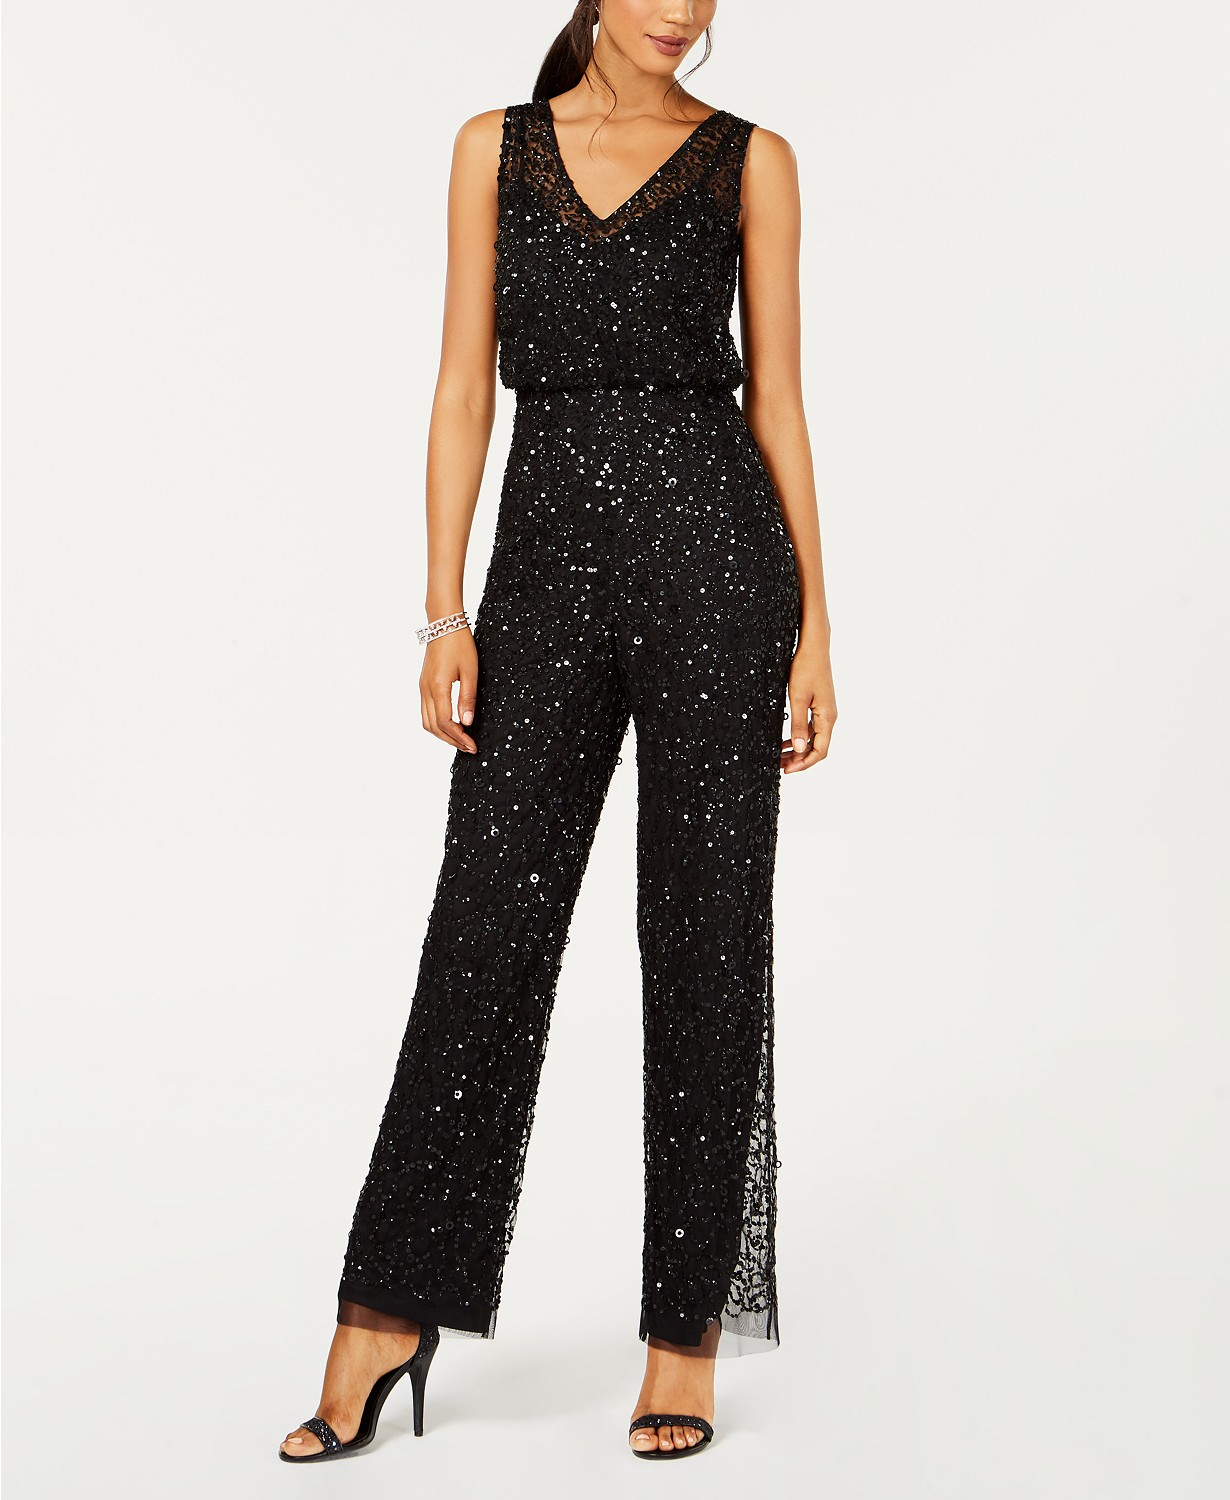 0db516e2e93b 9 Must Know Styling Tips for the Best Petite Jumpsuit